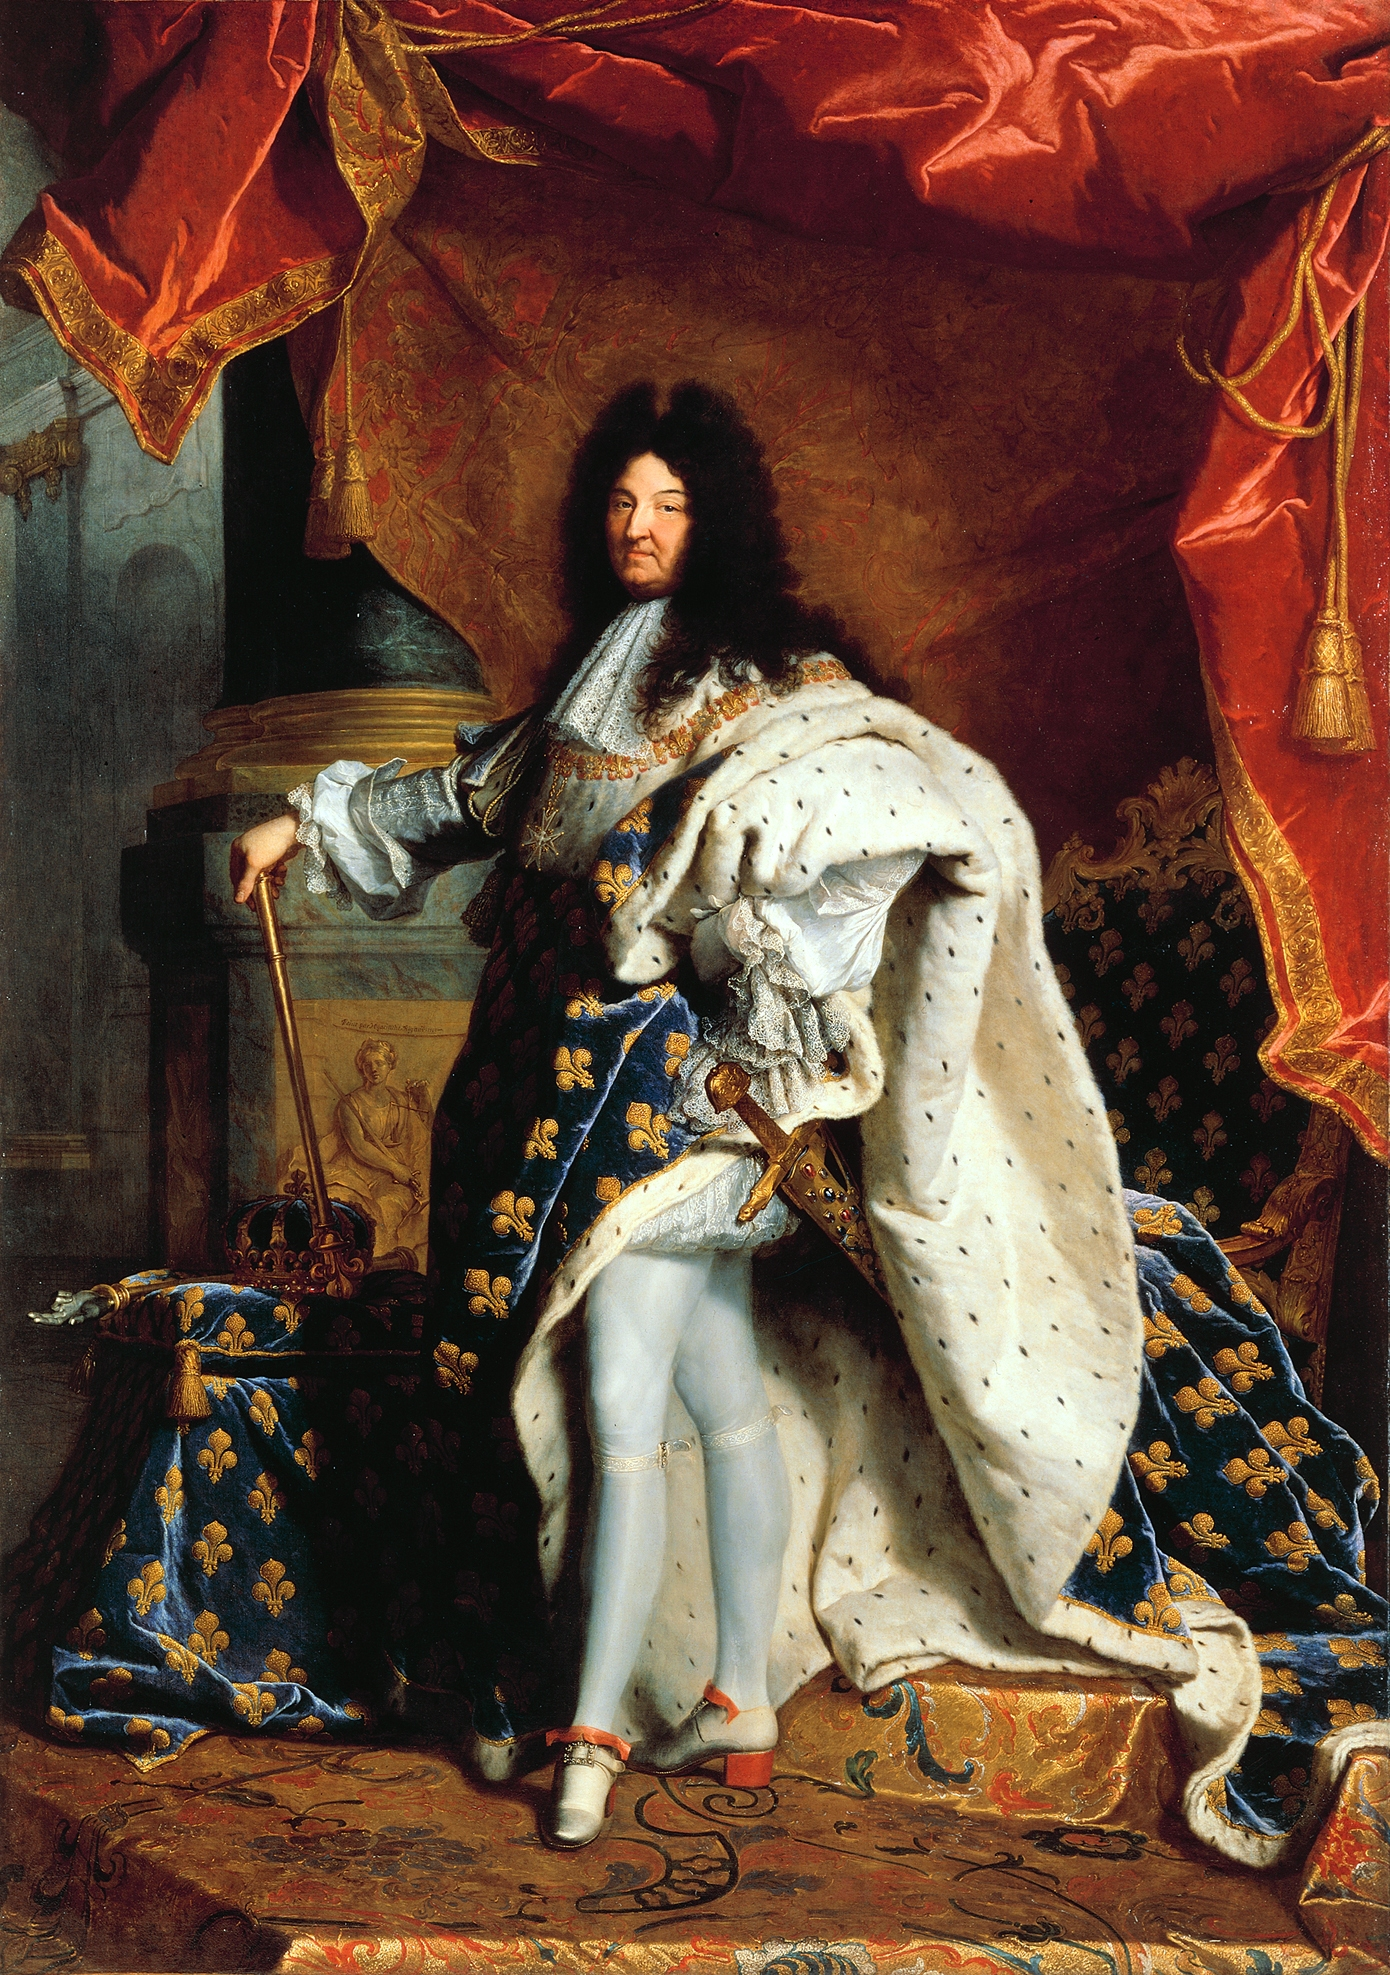 europe s s louis xiv s use of fashion to control and europe 1600s 1700s louis xiv s use of fashion to control and express power